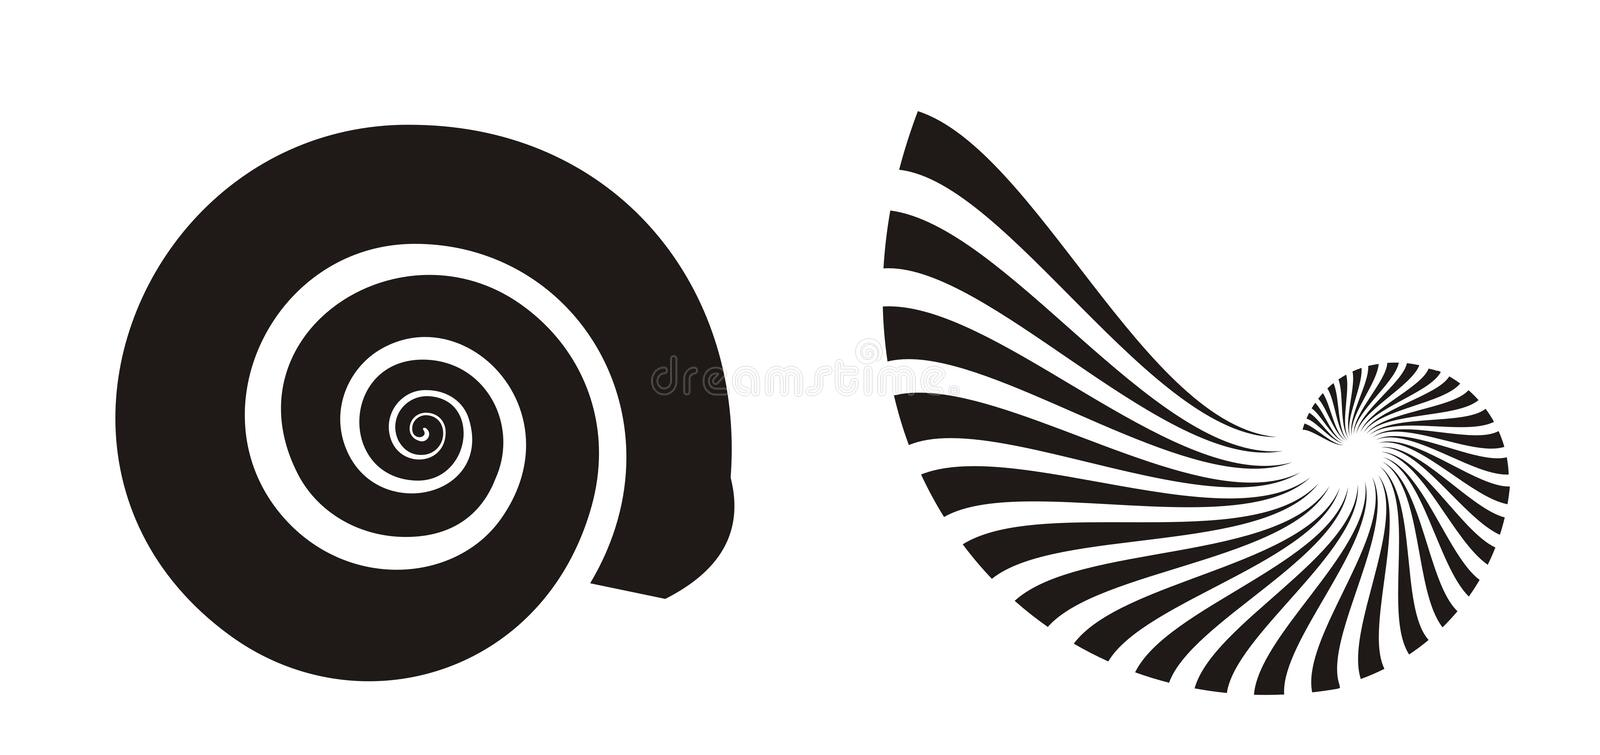 Overzeese Shell Pictogrammen vector illustratie